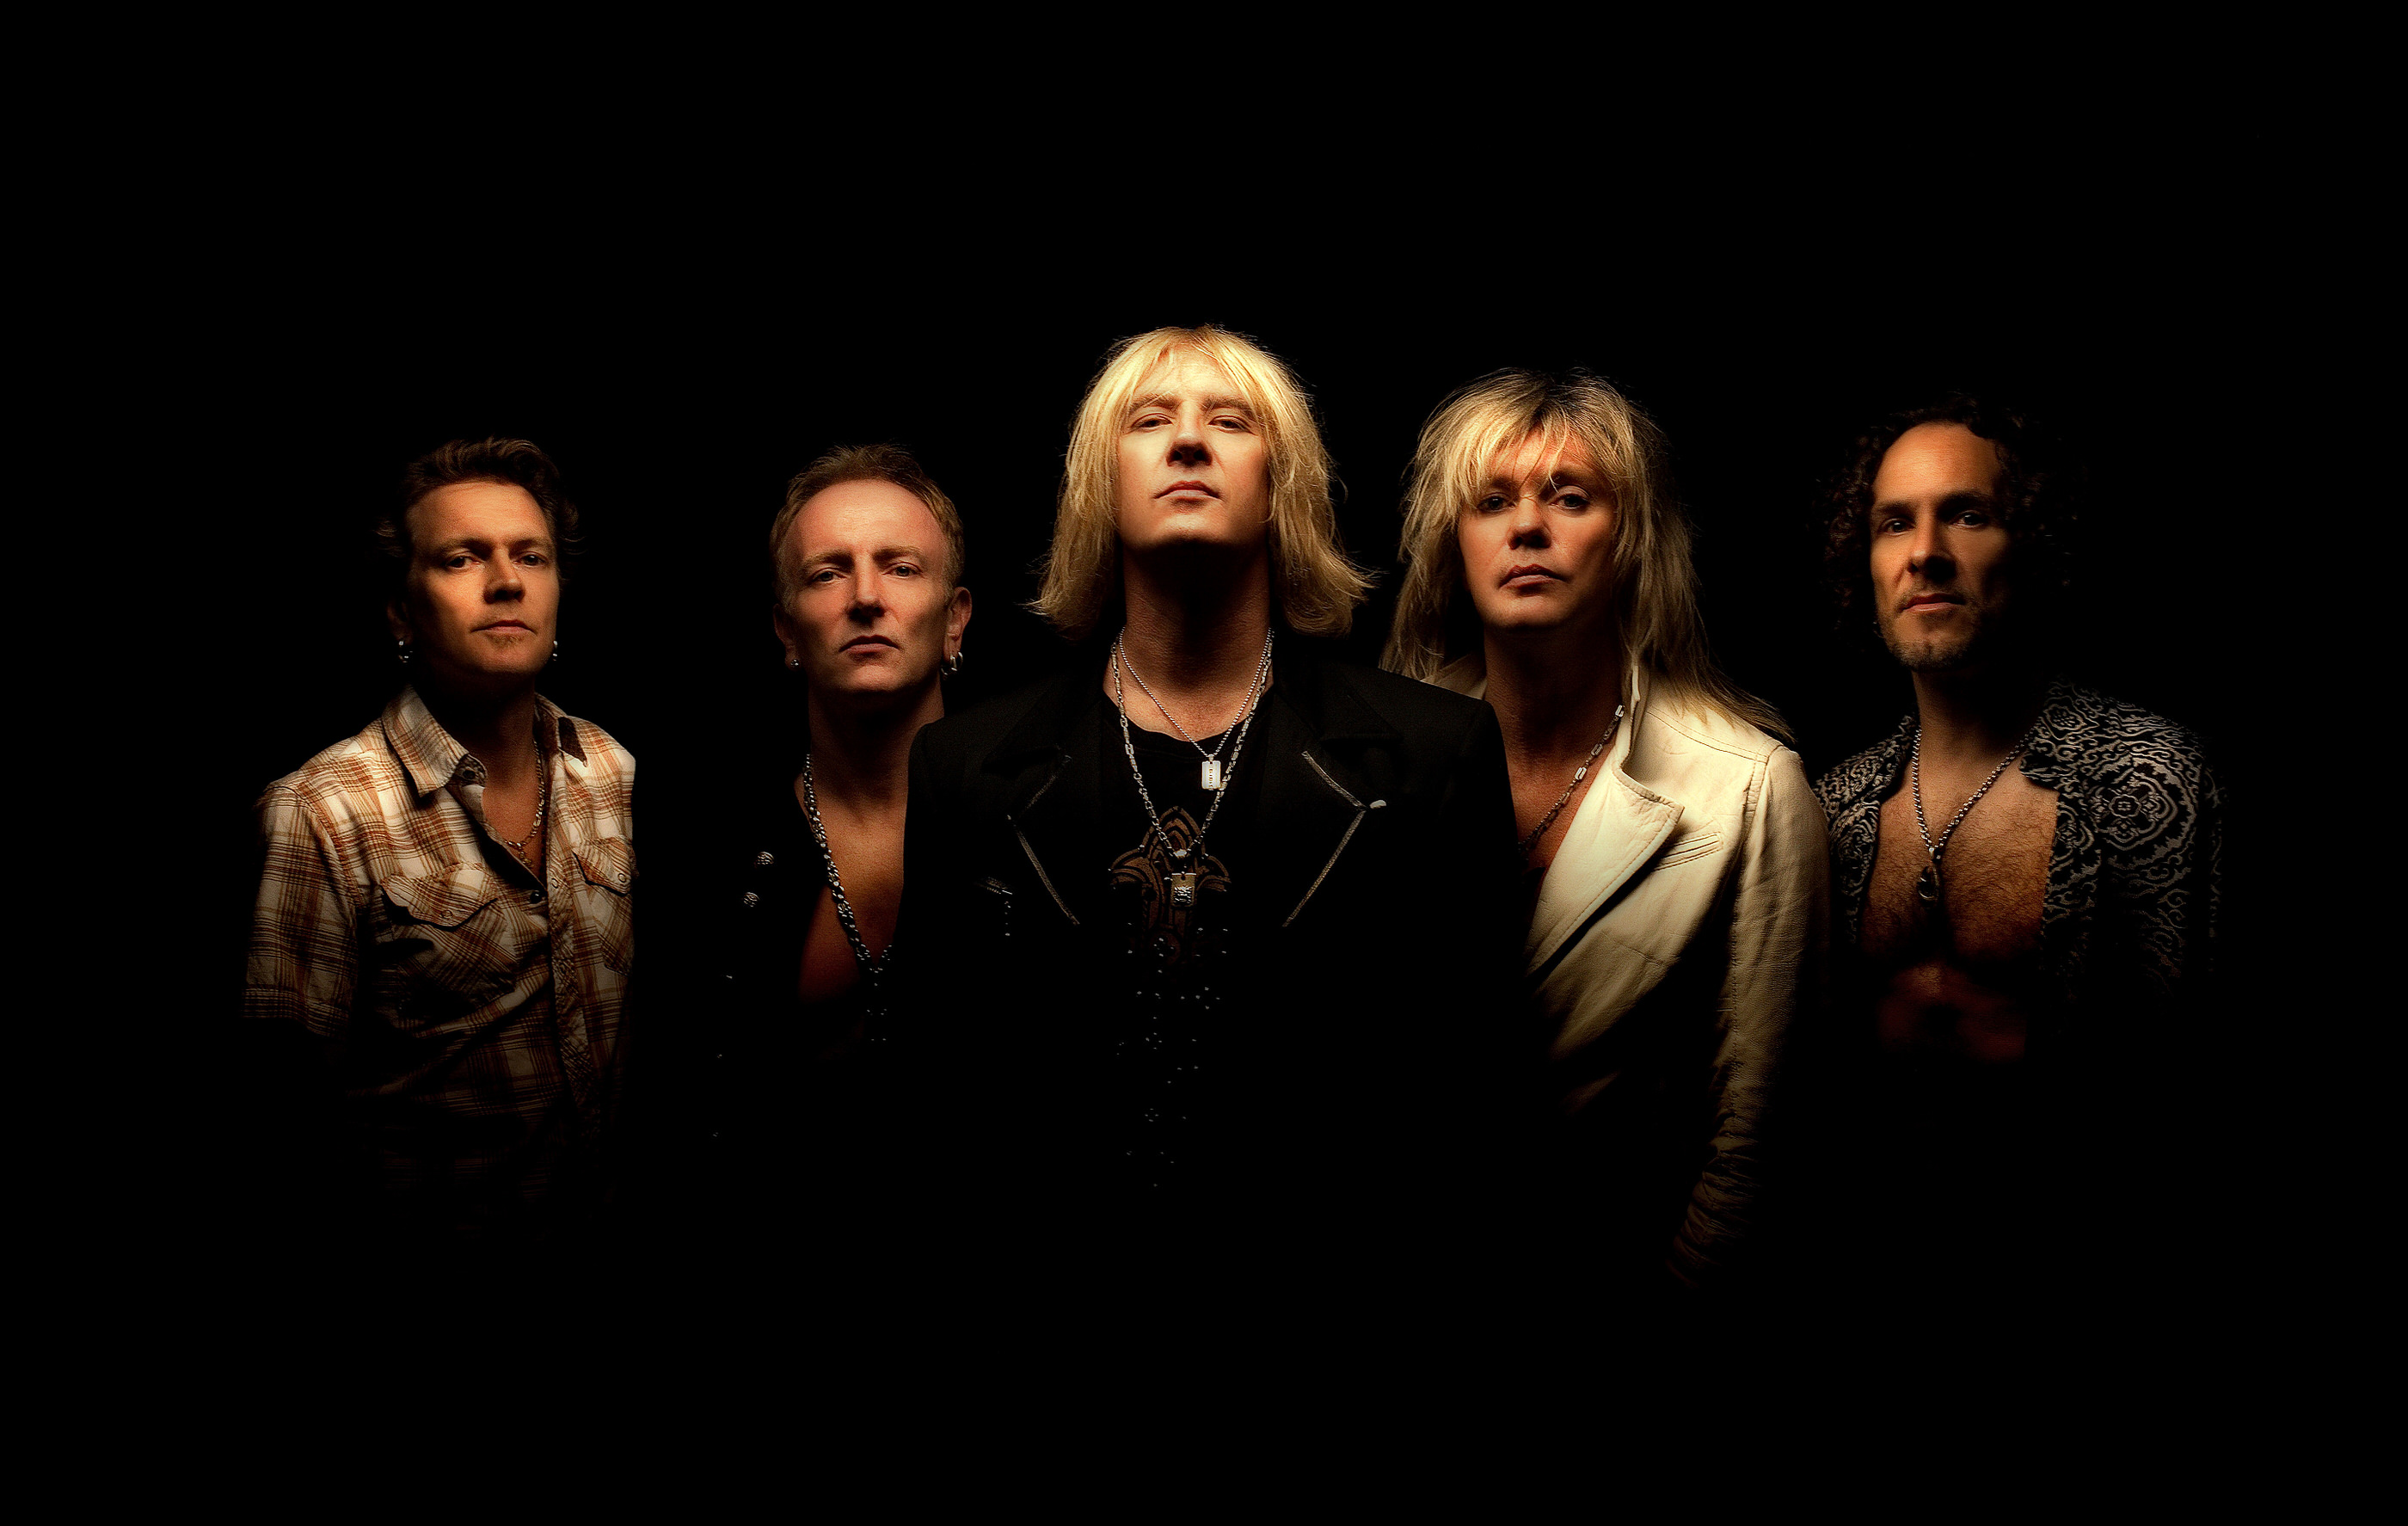 DEF LEPPARD STUDIO VEGAS 2614 BY ASH NEWELL